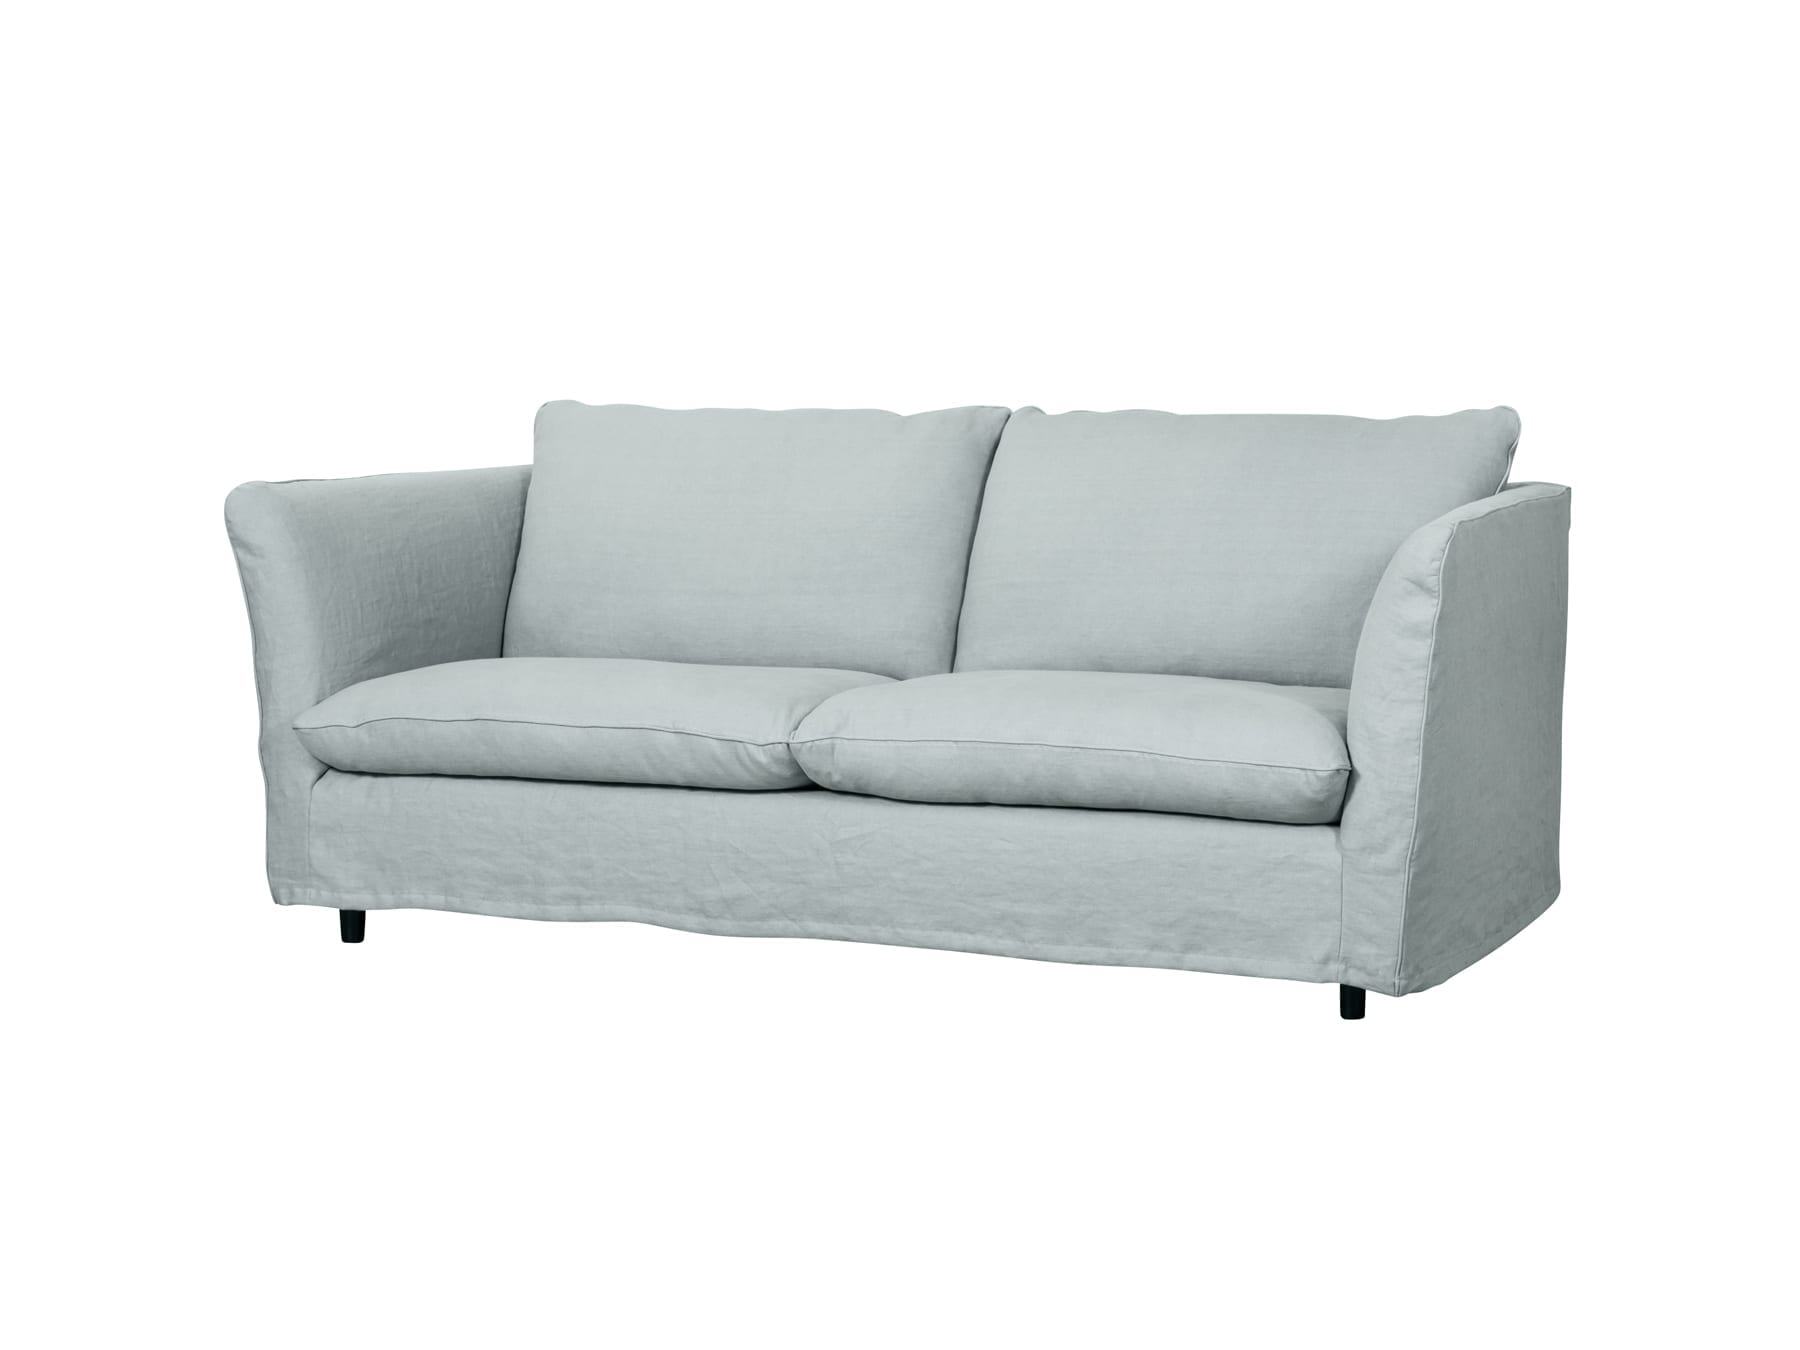 Furninova Revival LC Sofa available at McKenzie & Willis